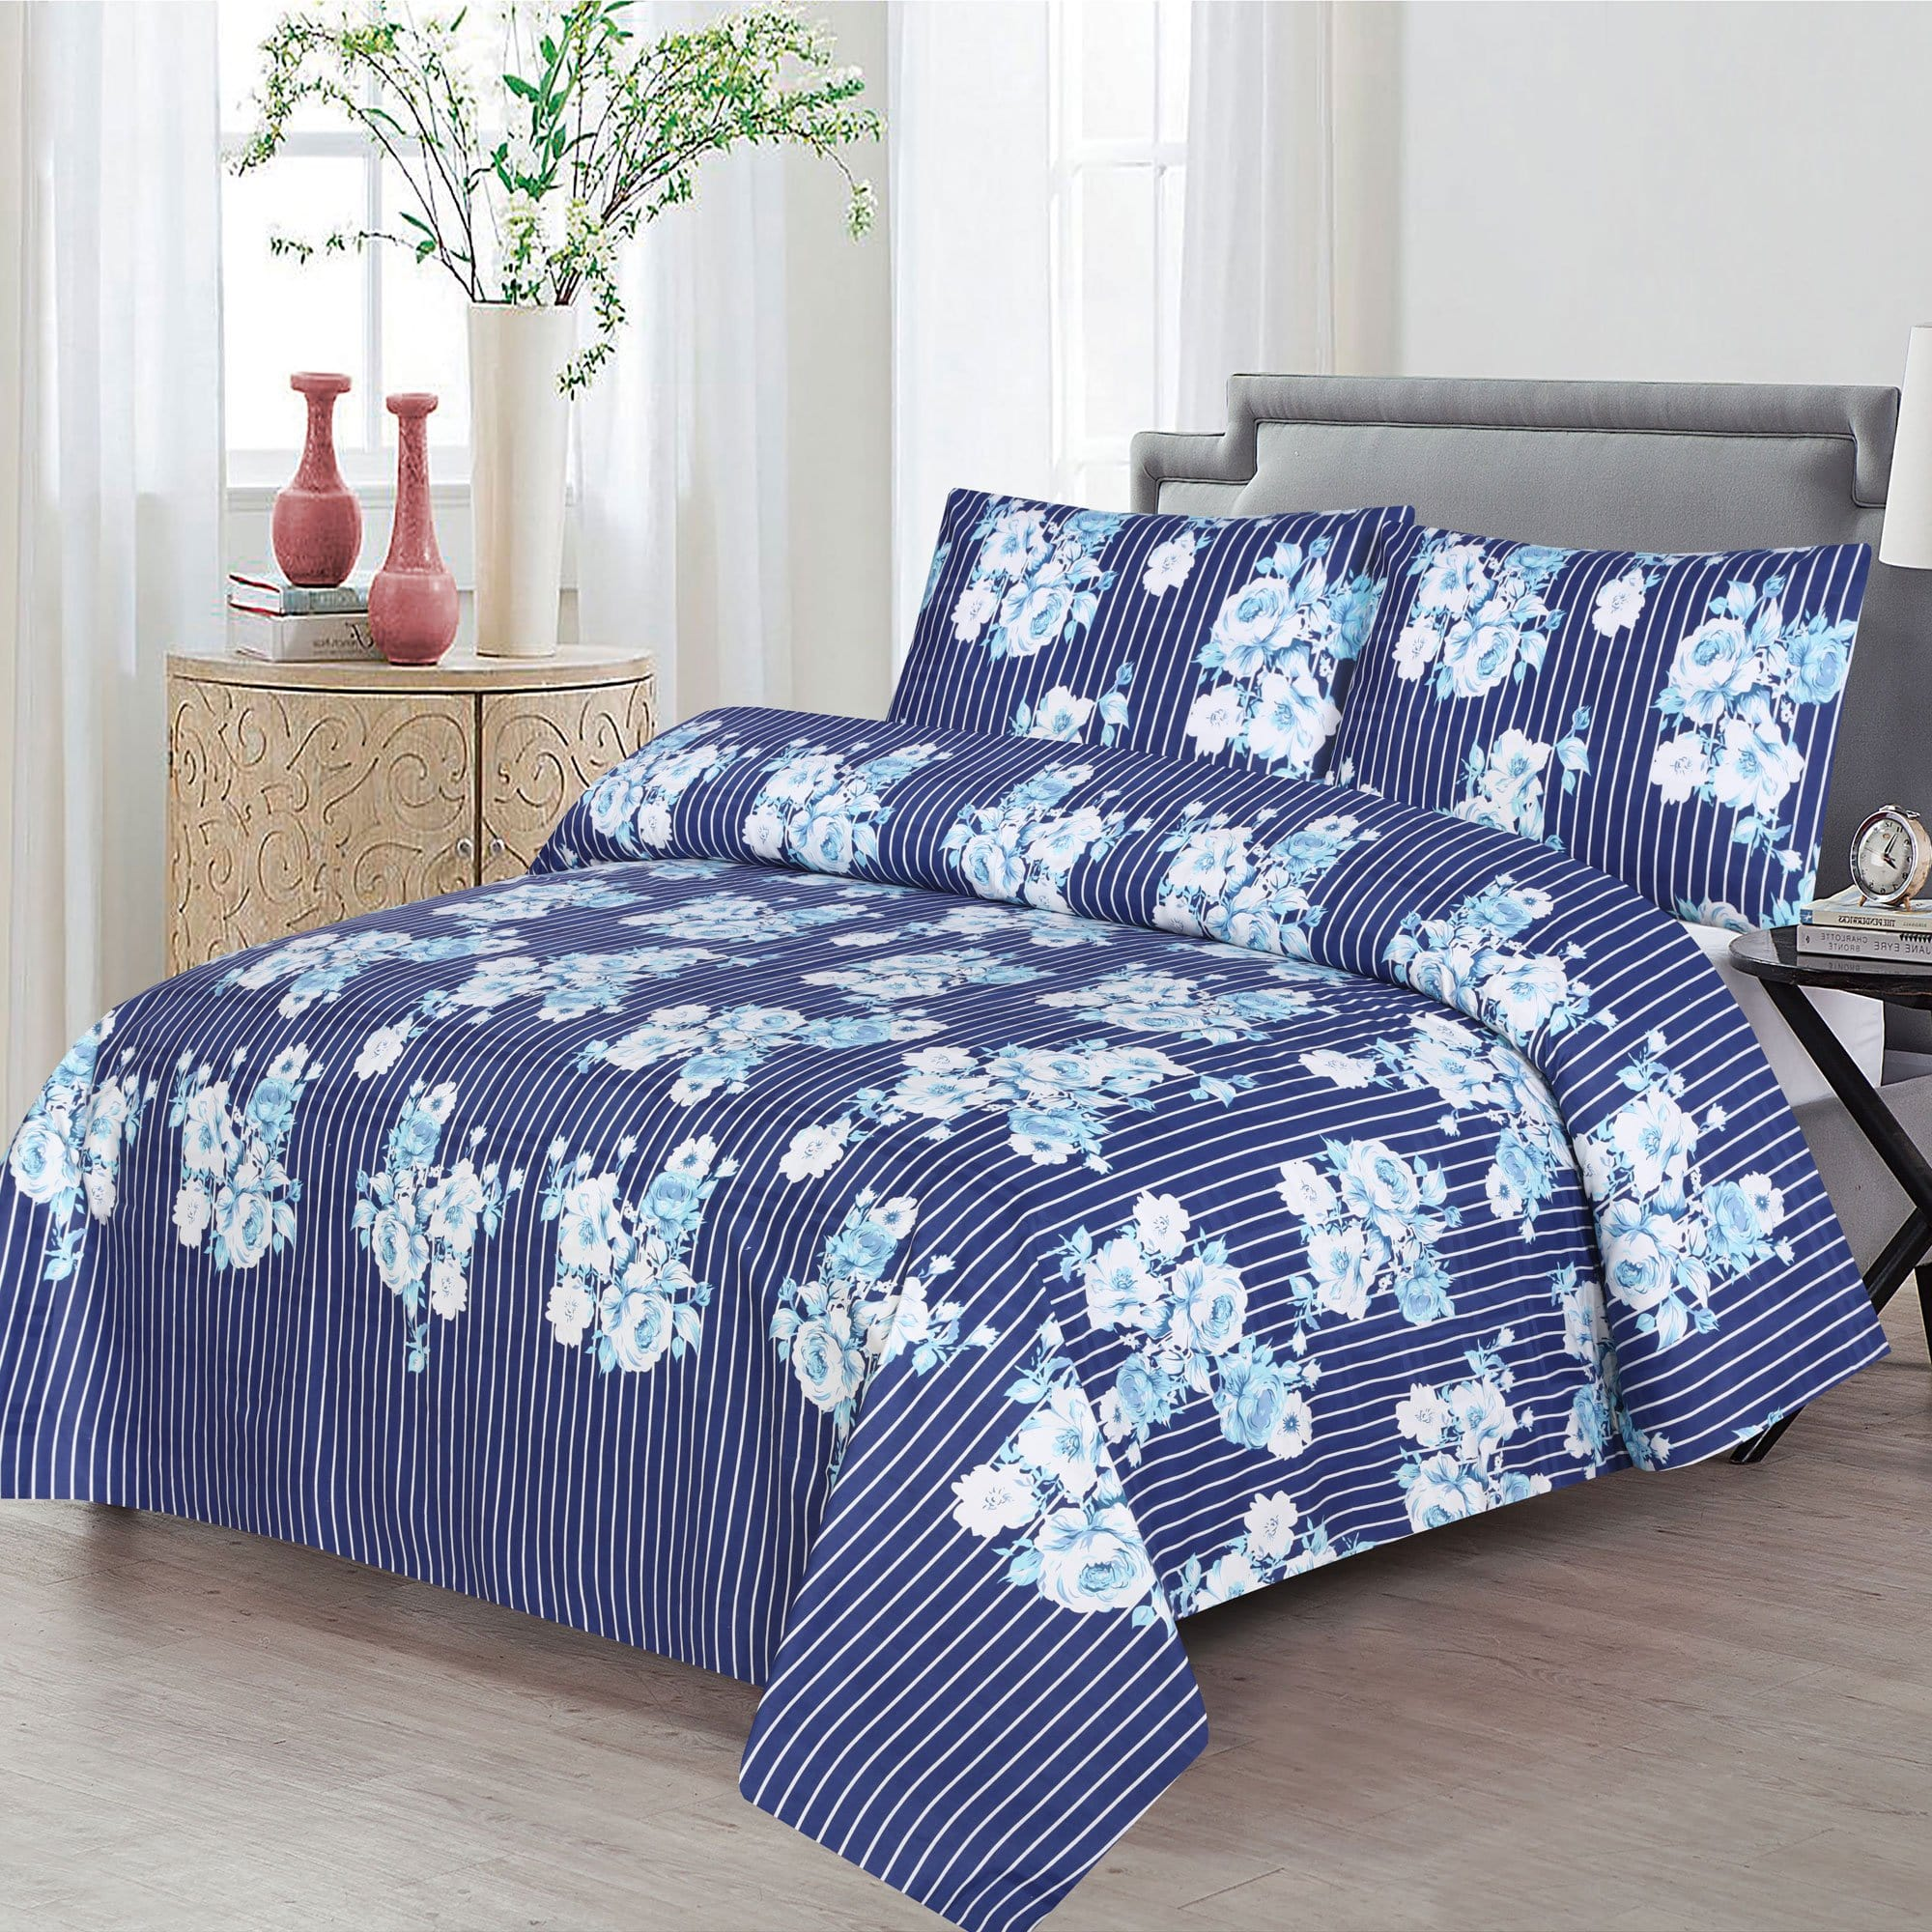 Grace D362-Reactive cotton Satin Quality king size Bedsheet with 2 pillow covers.